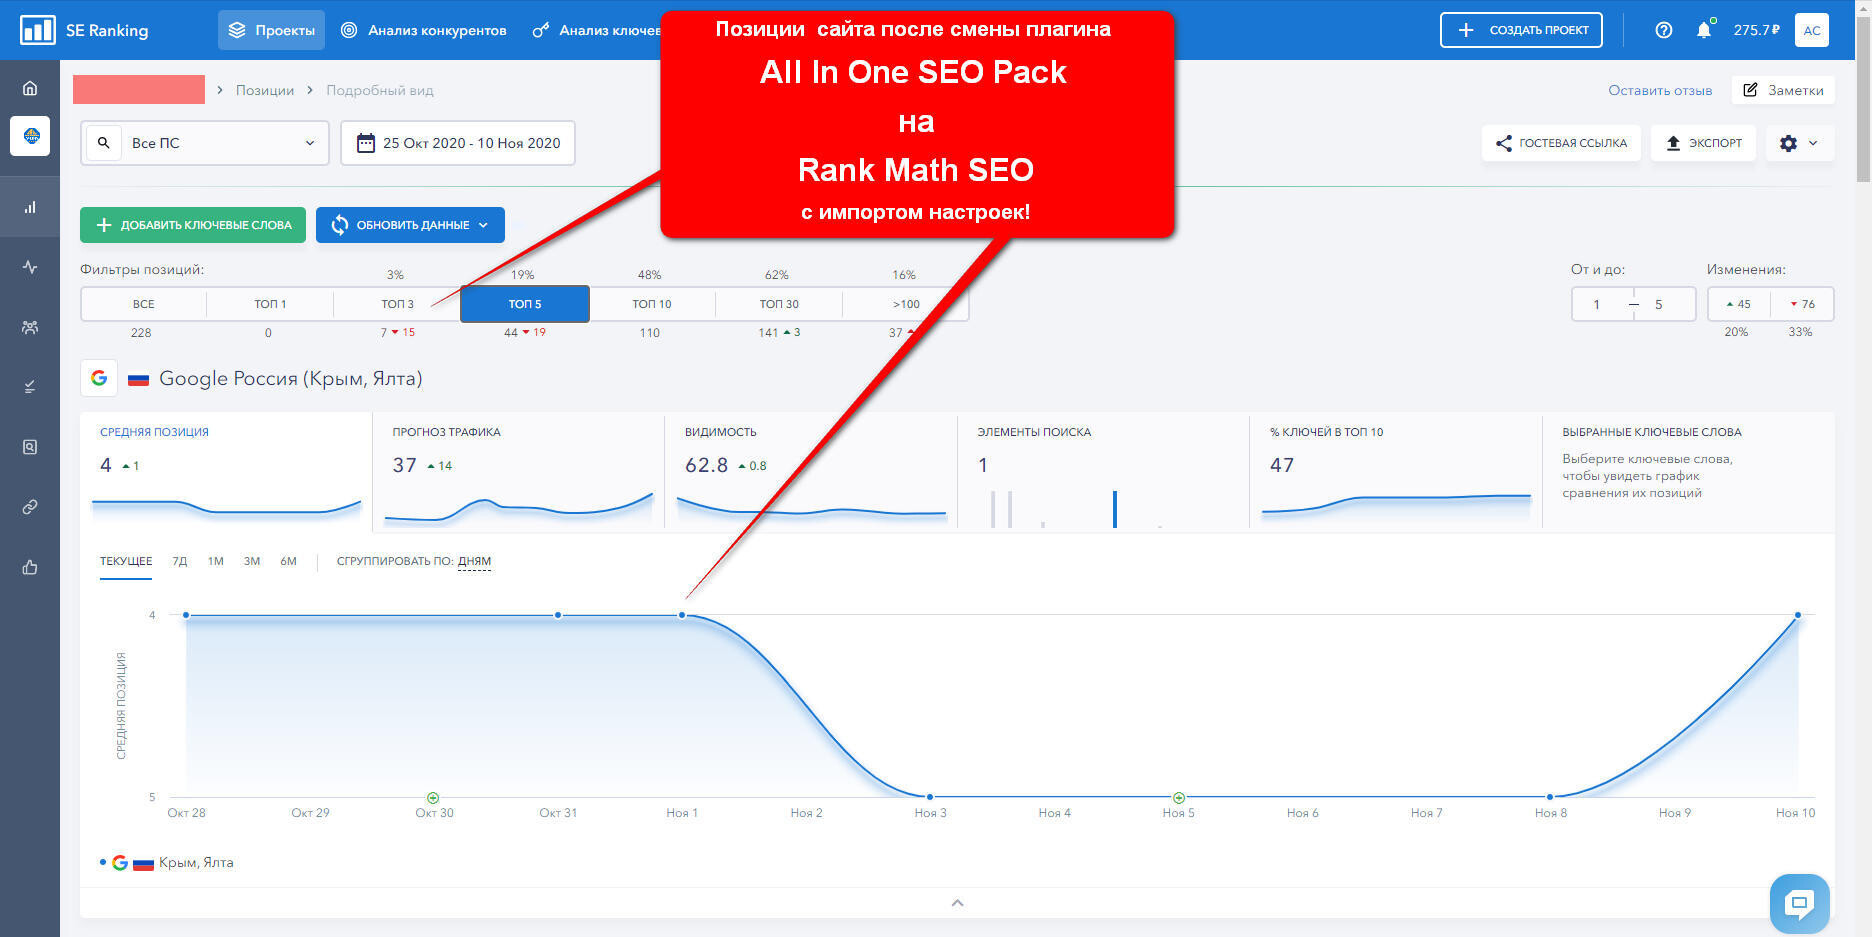 SITE DOWN AFTER INSTALL Rank Math SEO